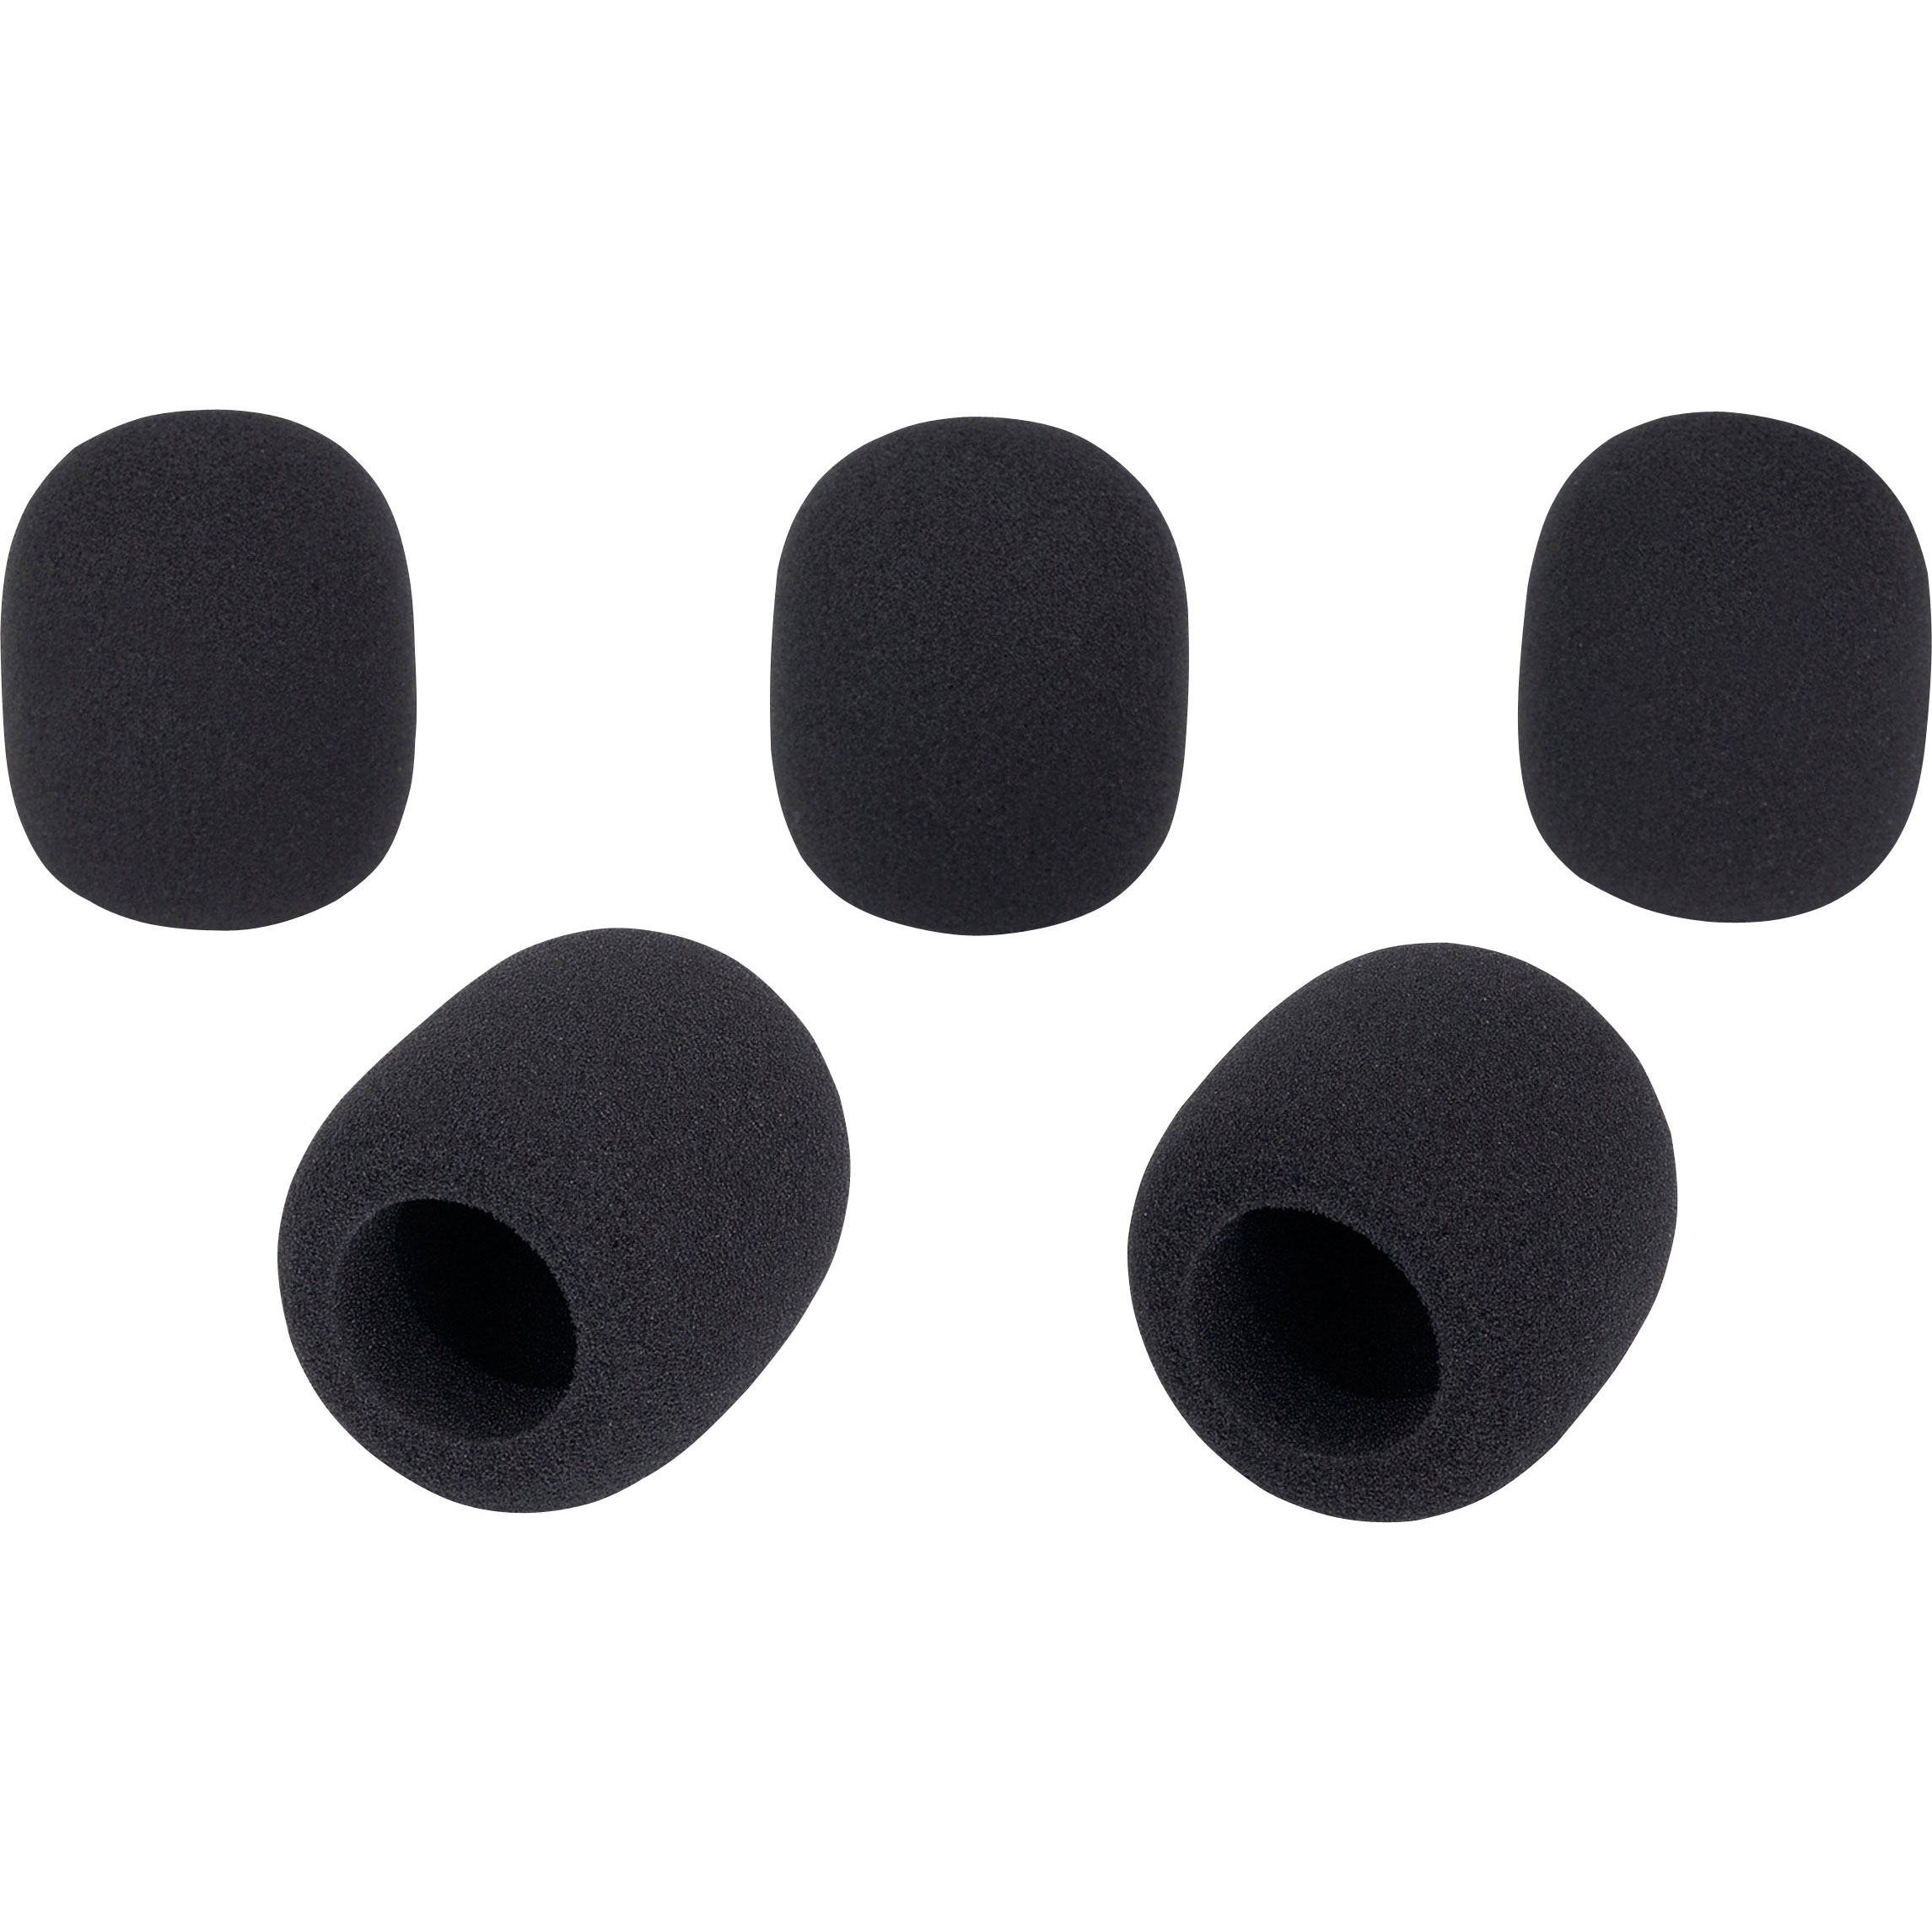 Samson Microphone Windscreens (5-Pack)